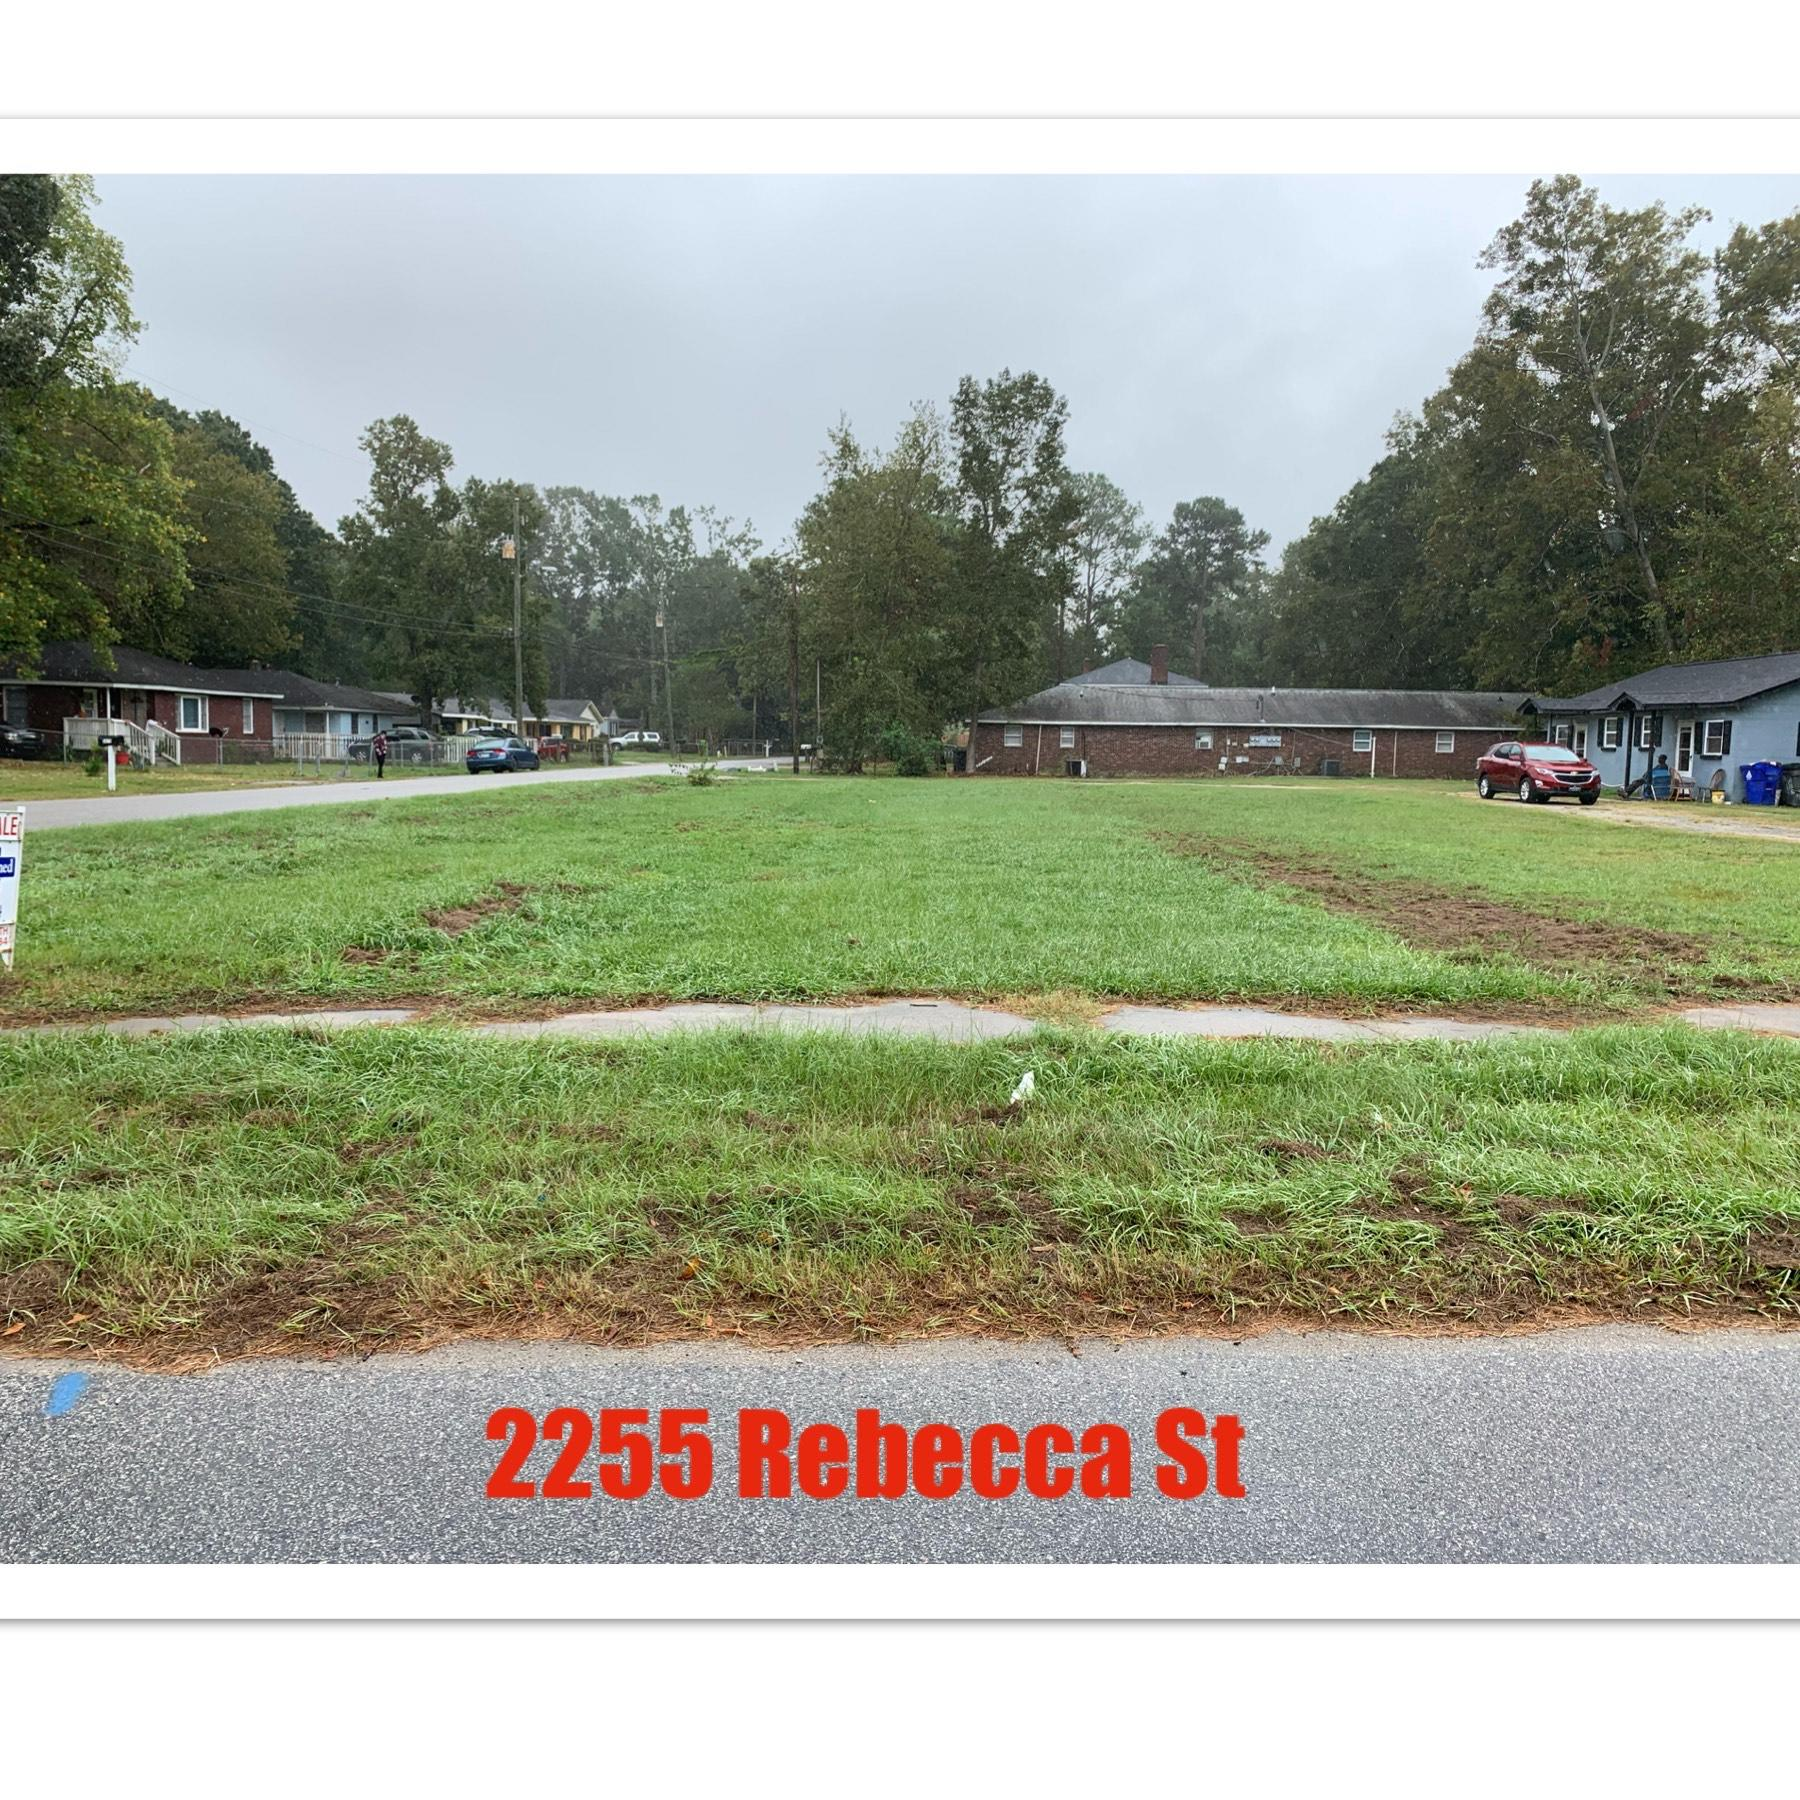 2255 Rebecca Street North Charleston, SC 29406